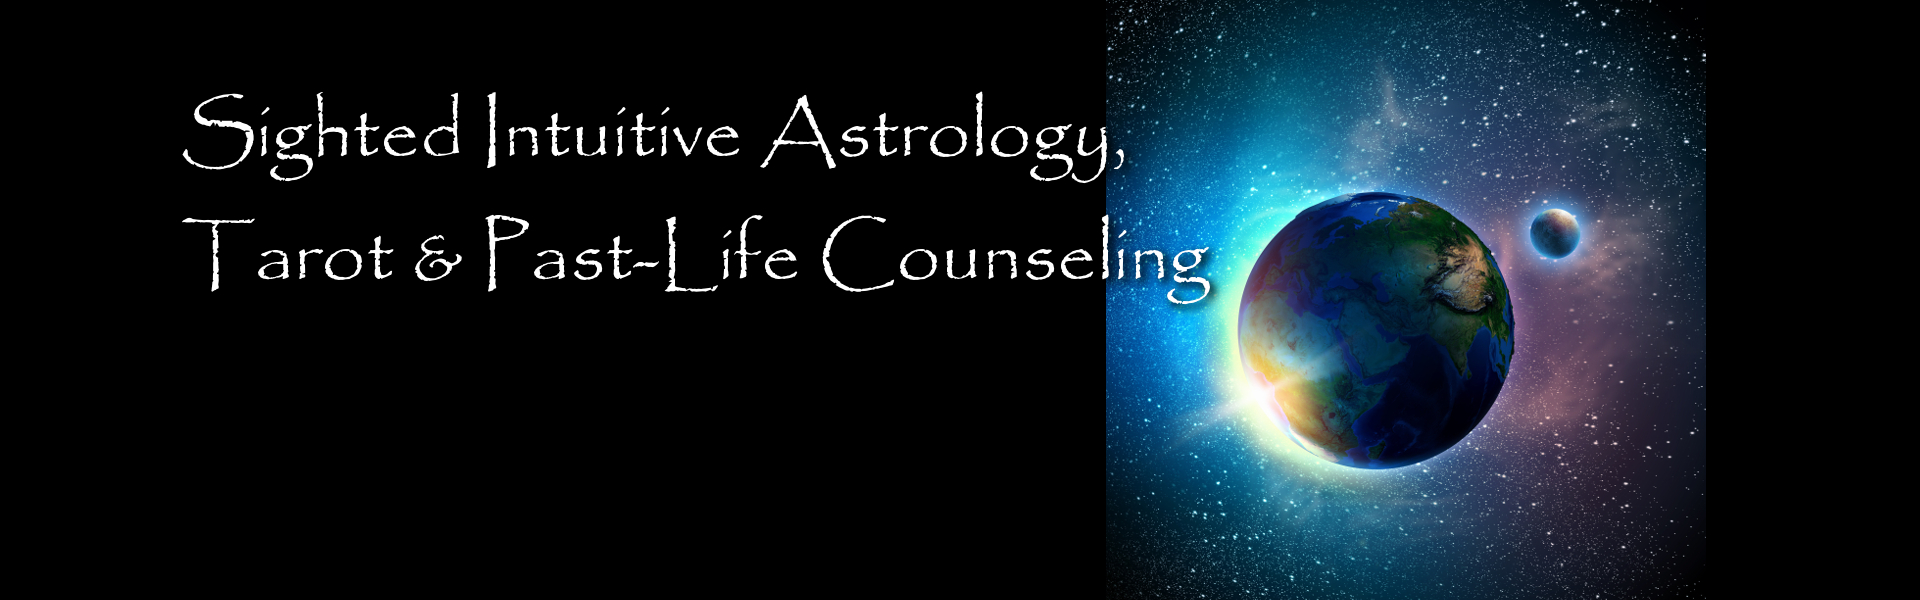 Sighted Intuitive Astrology, Tarot & Past Life Counseling